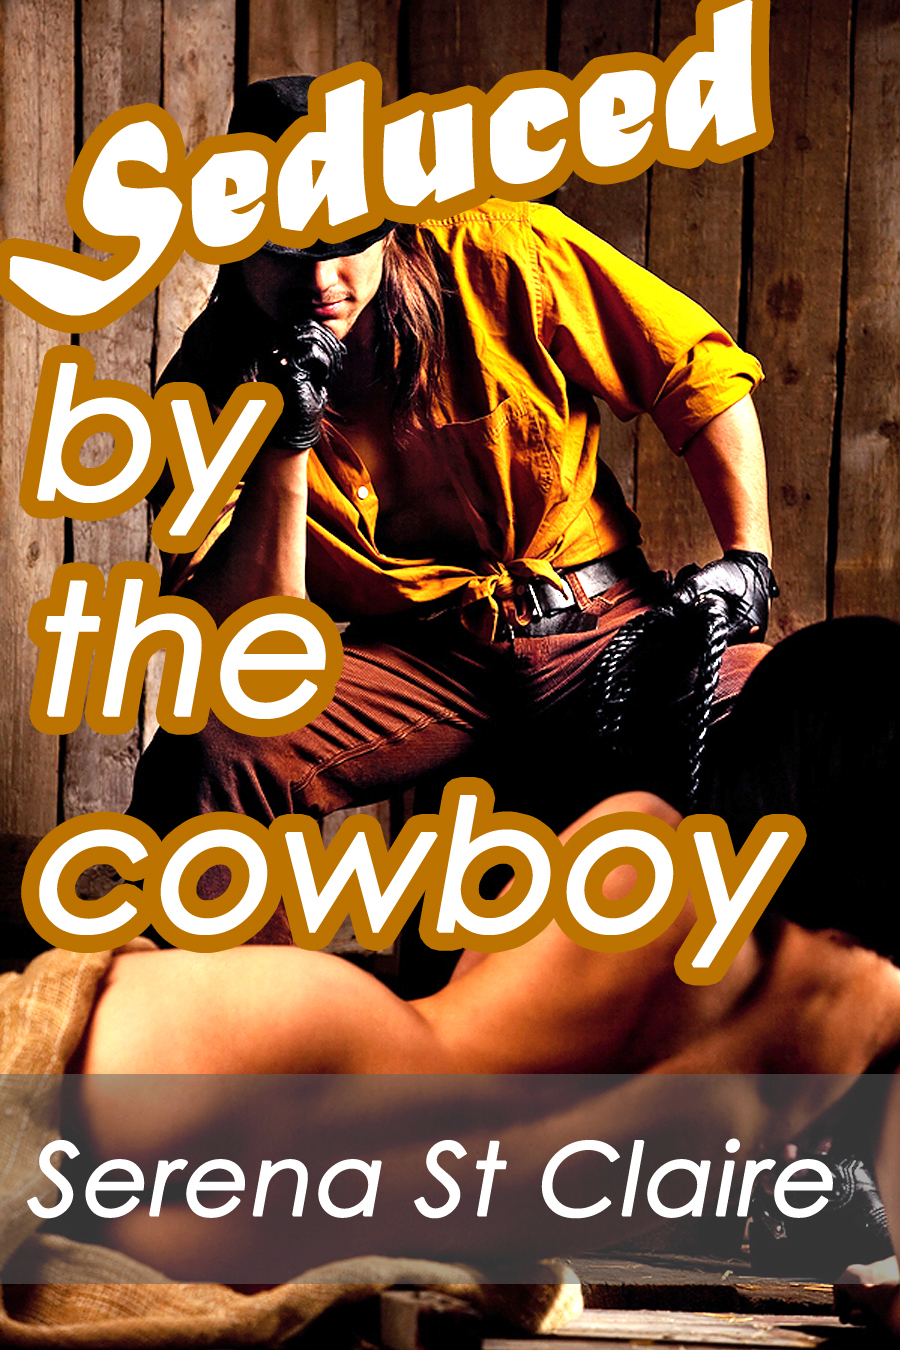 Seduced by the Cowboy (Western Sexin' Series) By: Serena St Claire